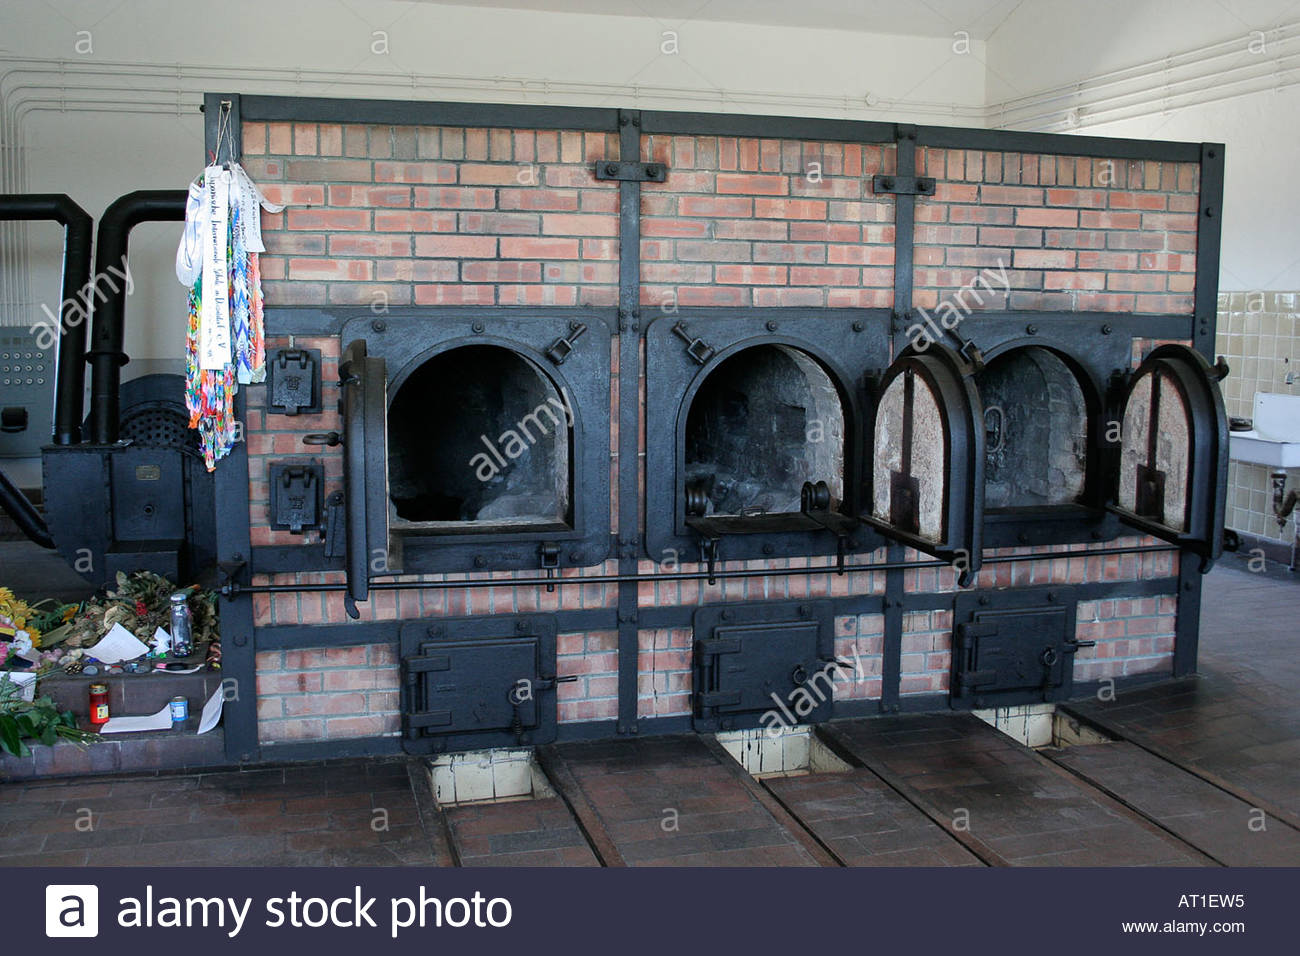 former concentration camp stock photos former concentration camp stock images alamy. Black Bedroom Furniture Sets. Home Design Ideas